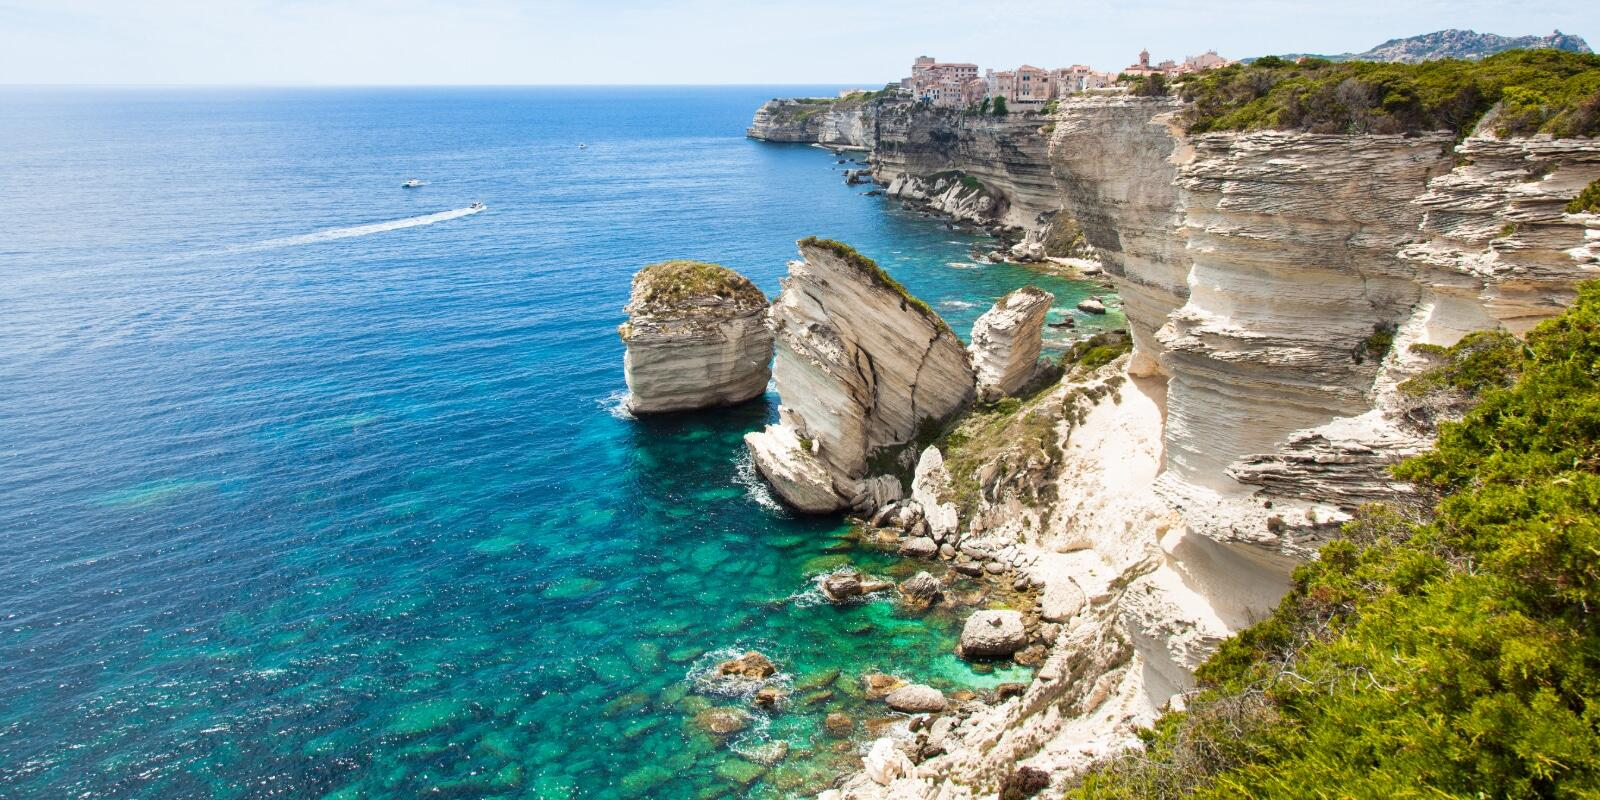 Cruise between southern Corsica and northern Sardinia Lavezzi and Maddalena archipelago